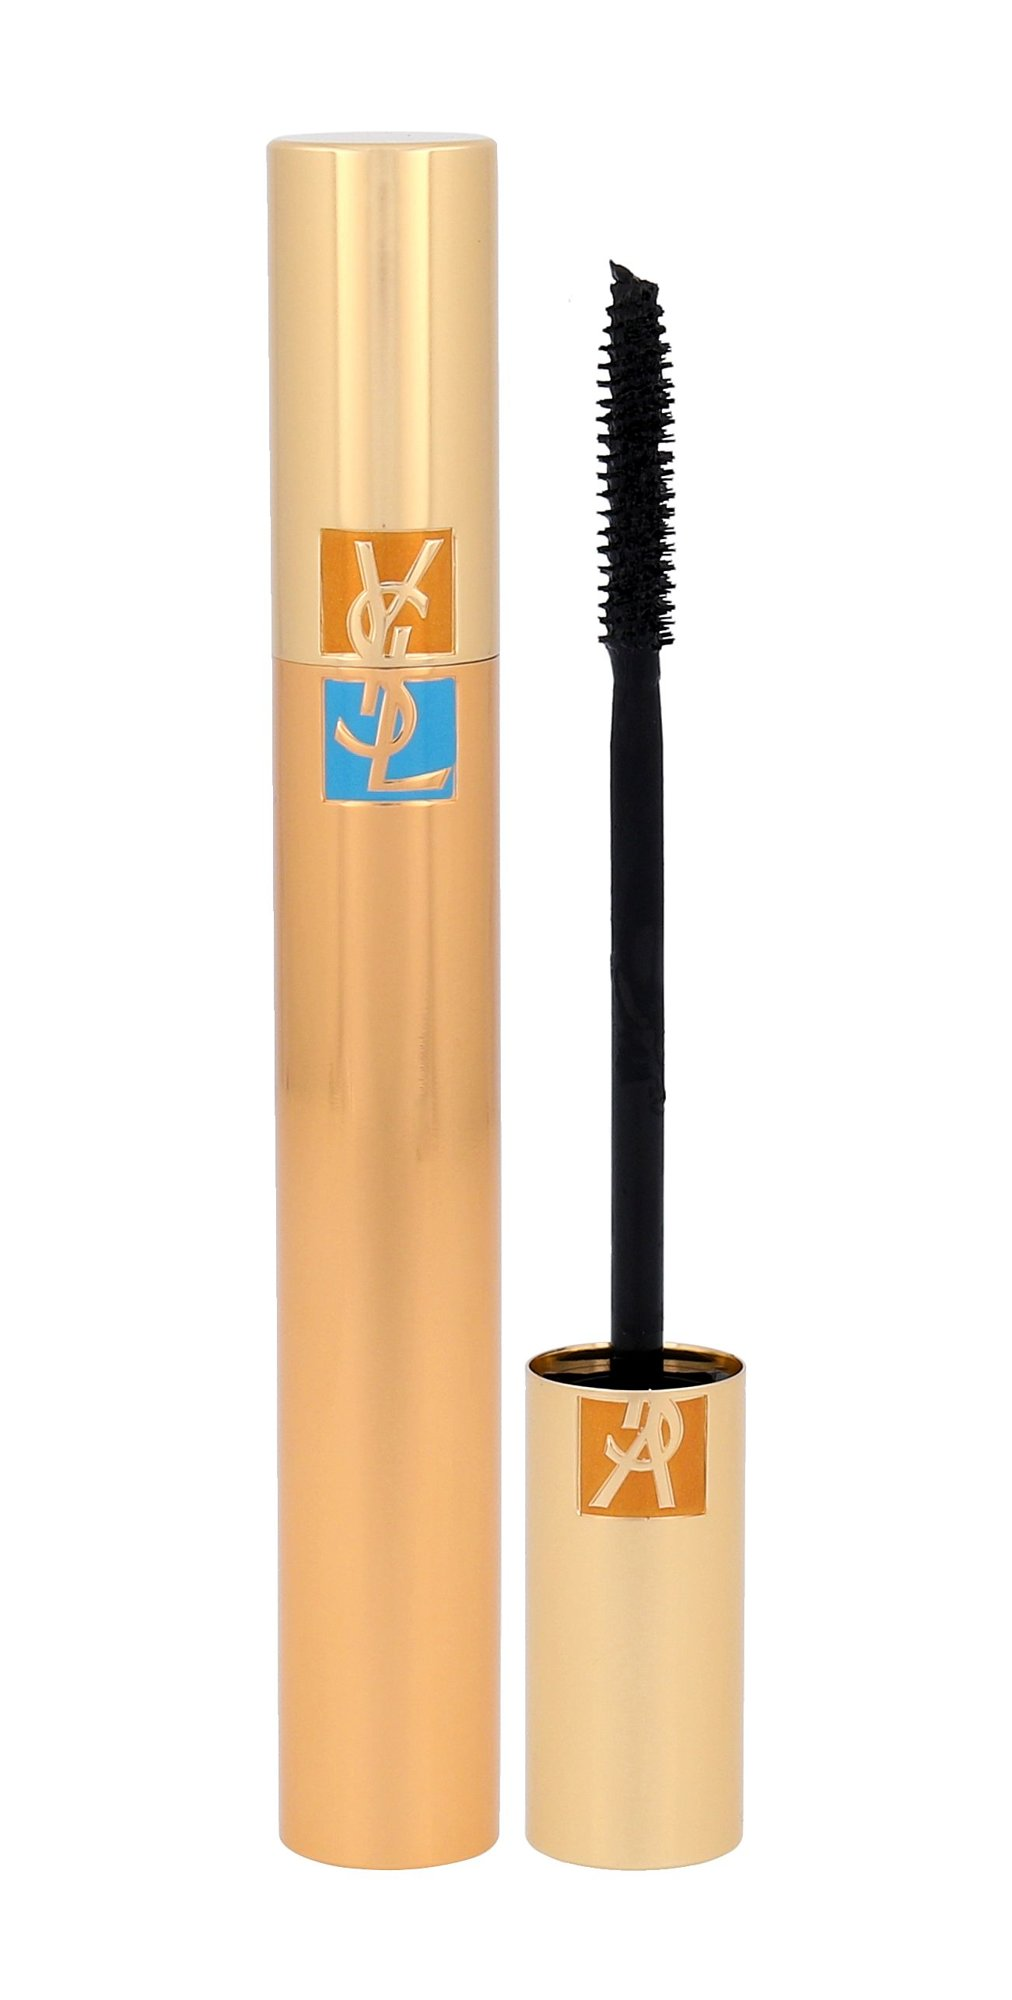 Yves Saint Laurent Mascara Volume Effet Faux Cils Waterproof Cosmetic 6,9m 01 Black Black